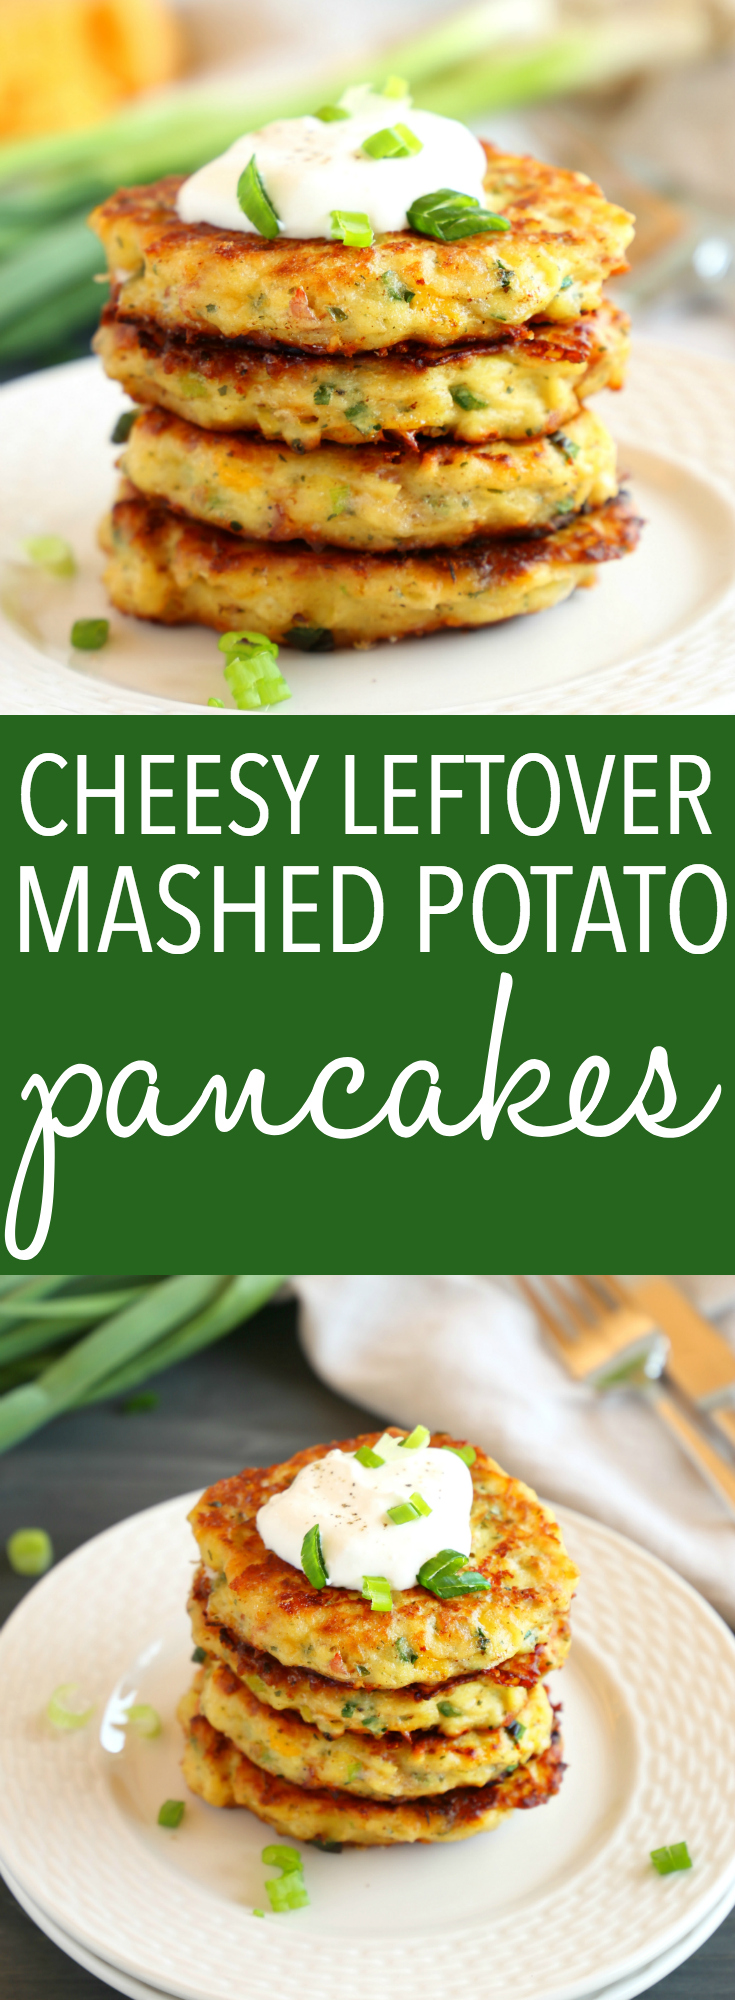 These Cheesy Leftover Mashed Potato Pancakes are the perfect easy meal or snack made with leftover mashed potatoes, cheese, ham, and all the fixings you love! Recipe from thebusybaker.ca! #potatopancakes #leftoverpotatoes #mashedpotatopancakes #leftoverpotatopancakes #whattomakewithleftovers #easymealidea #easydinner #simplemeal #glutenfree #glutenfreemeal #easyrecipe